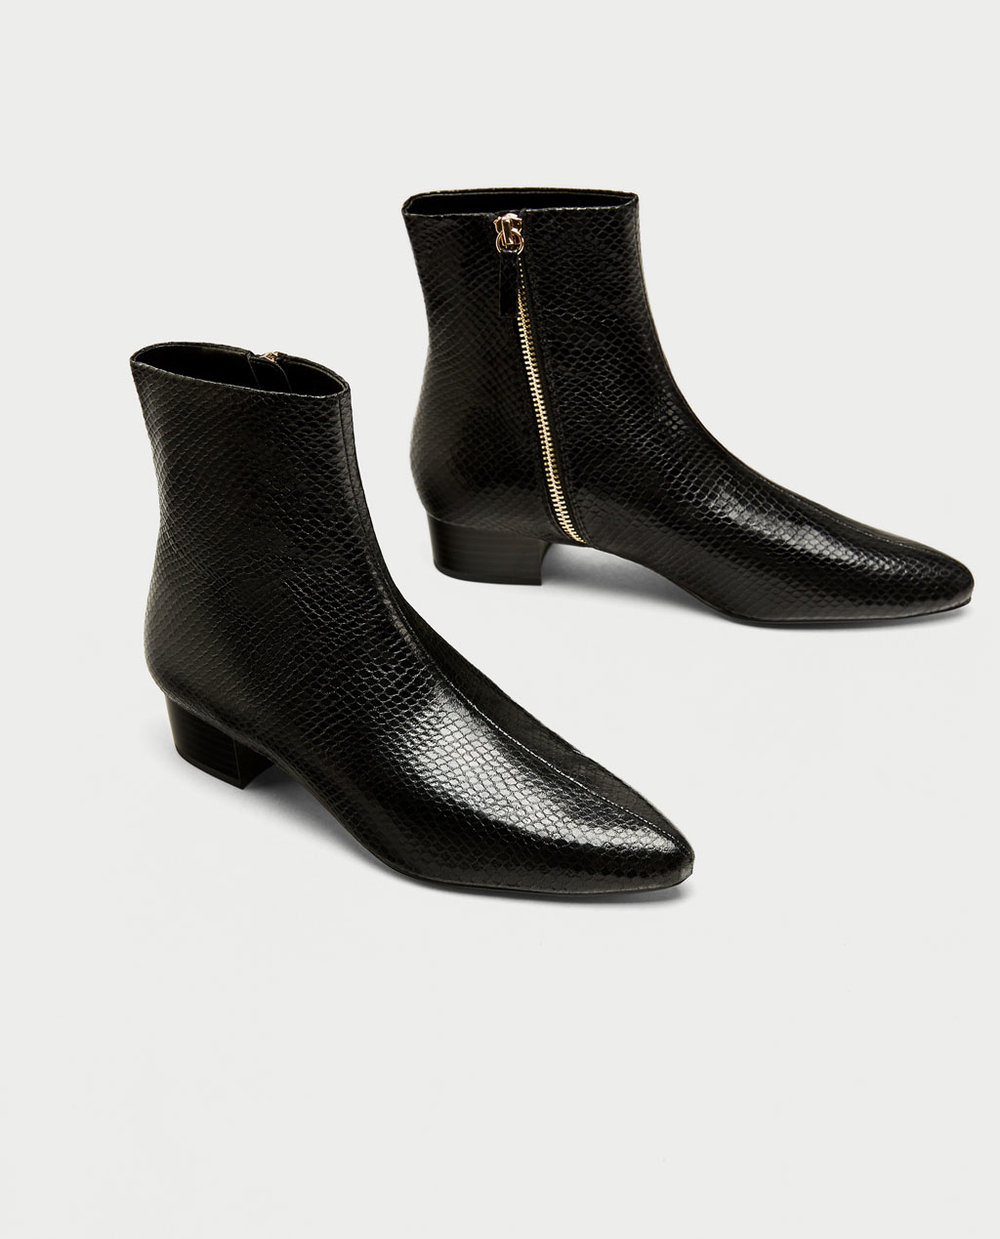 Steve Madden Editors Boot